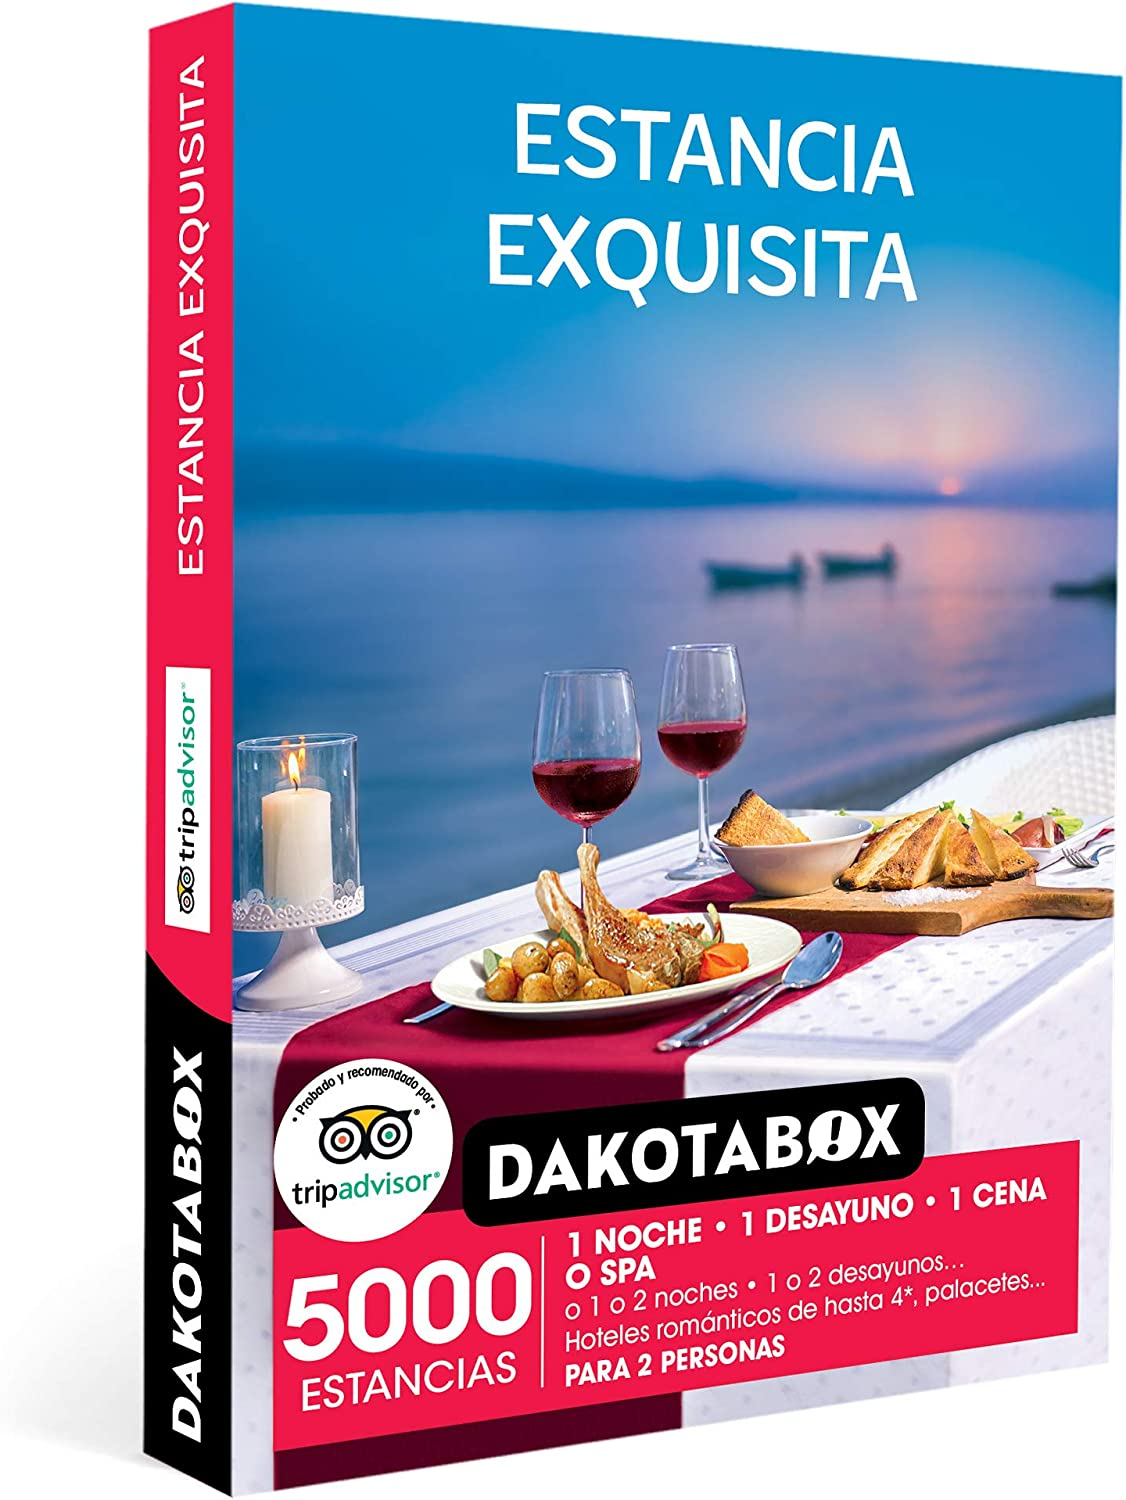 estancia exquisita dakotabox